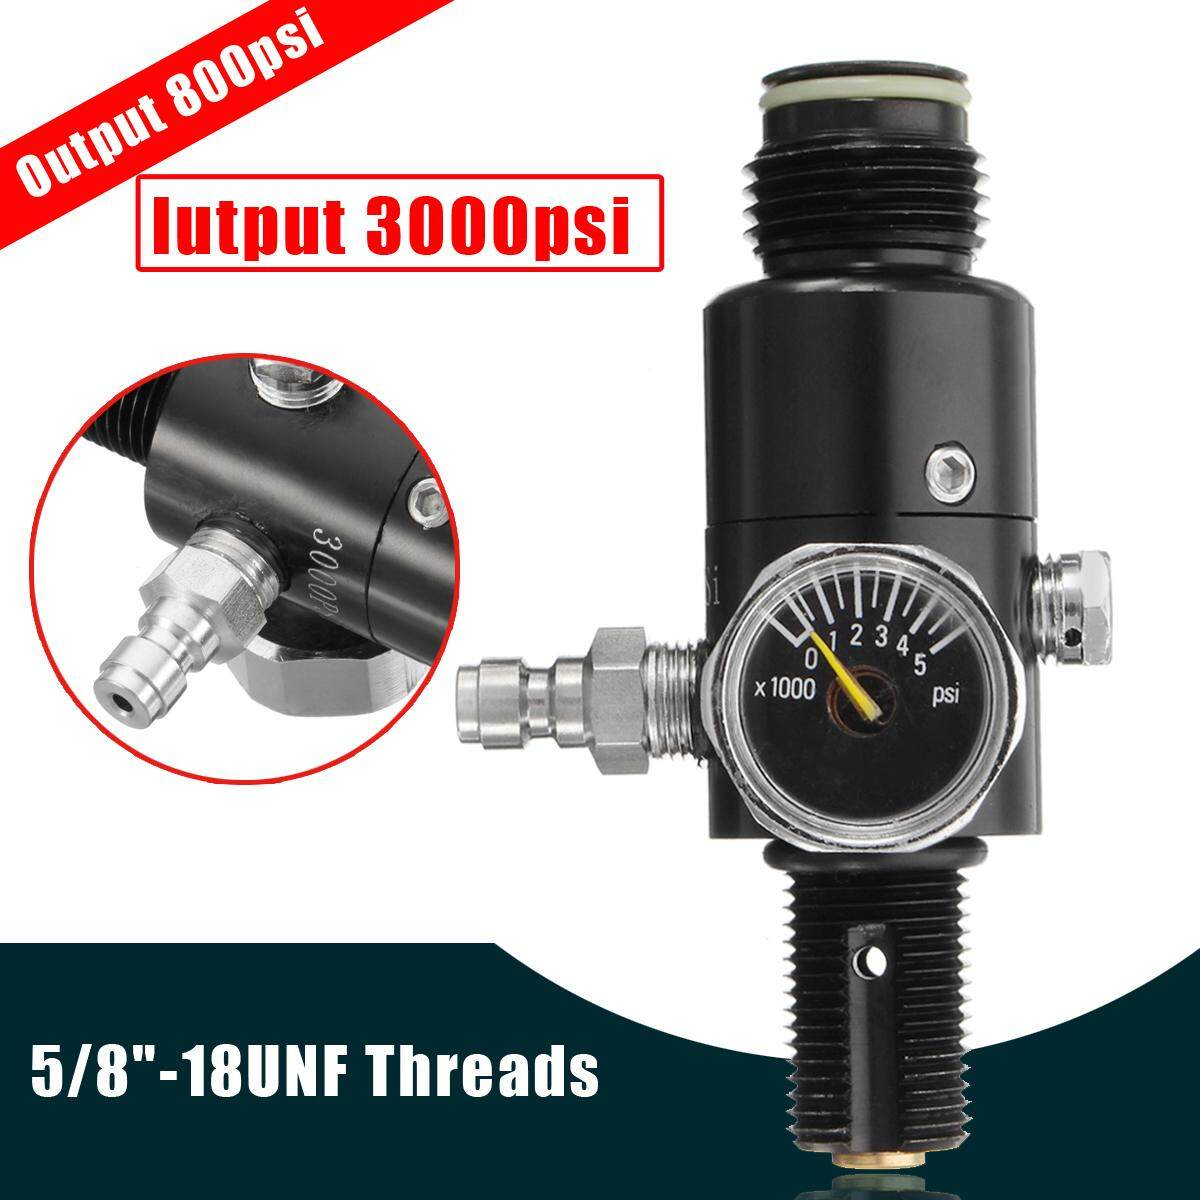 5/8-18UNF Thread Paintball 3000psi HPA Air Tank Valve Regulator Output 800psi Black